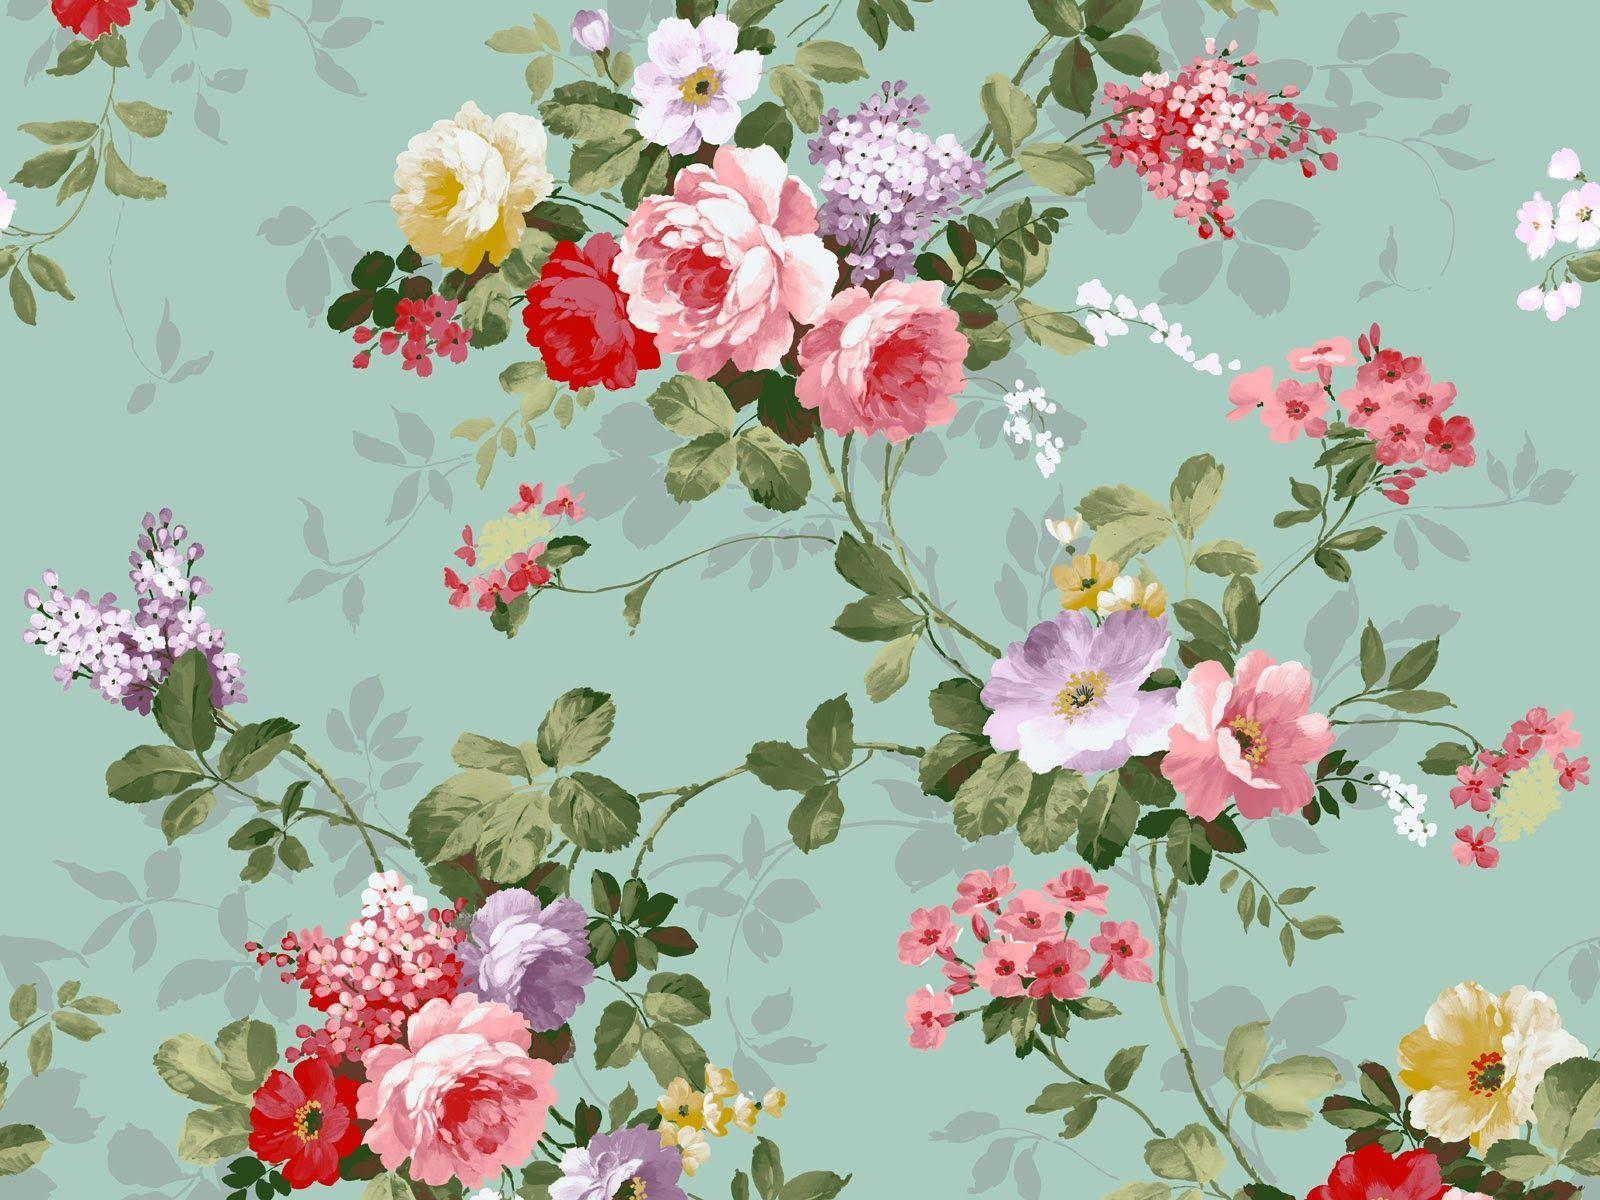 Vintage Flowers Desktop Wallpapers Wallpaper Cave